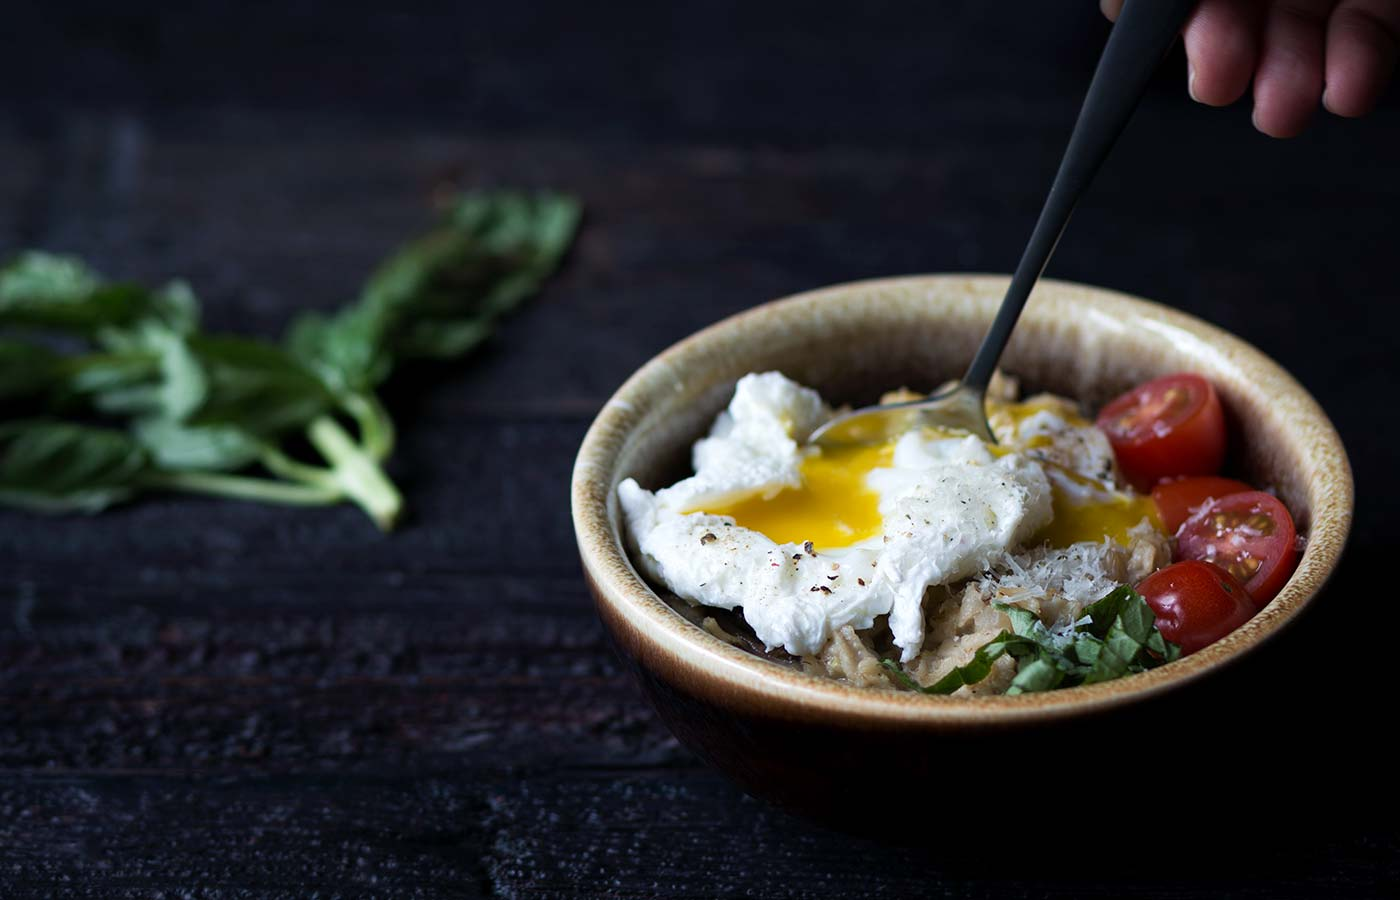 spoon breaking poached egg yolk in a bowl of cooked oats, tomatoes, and fresh basil